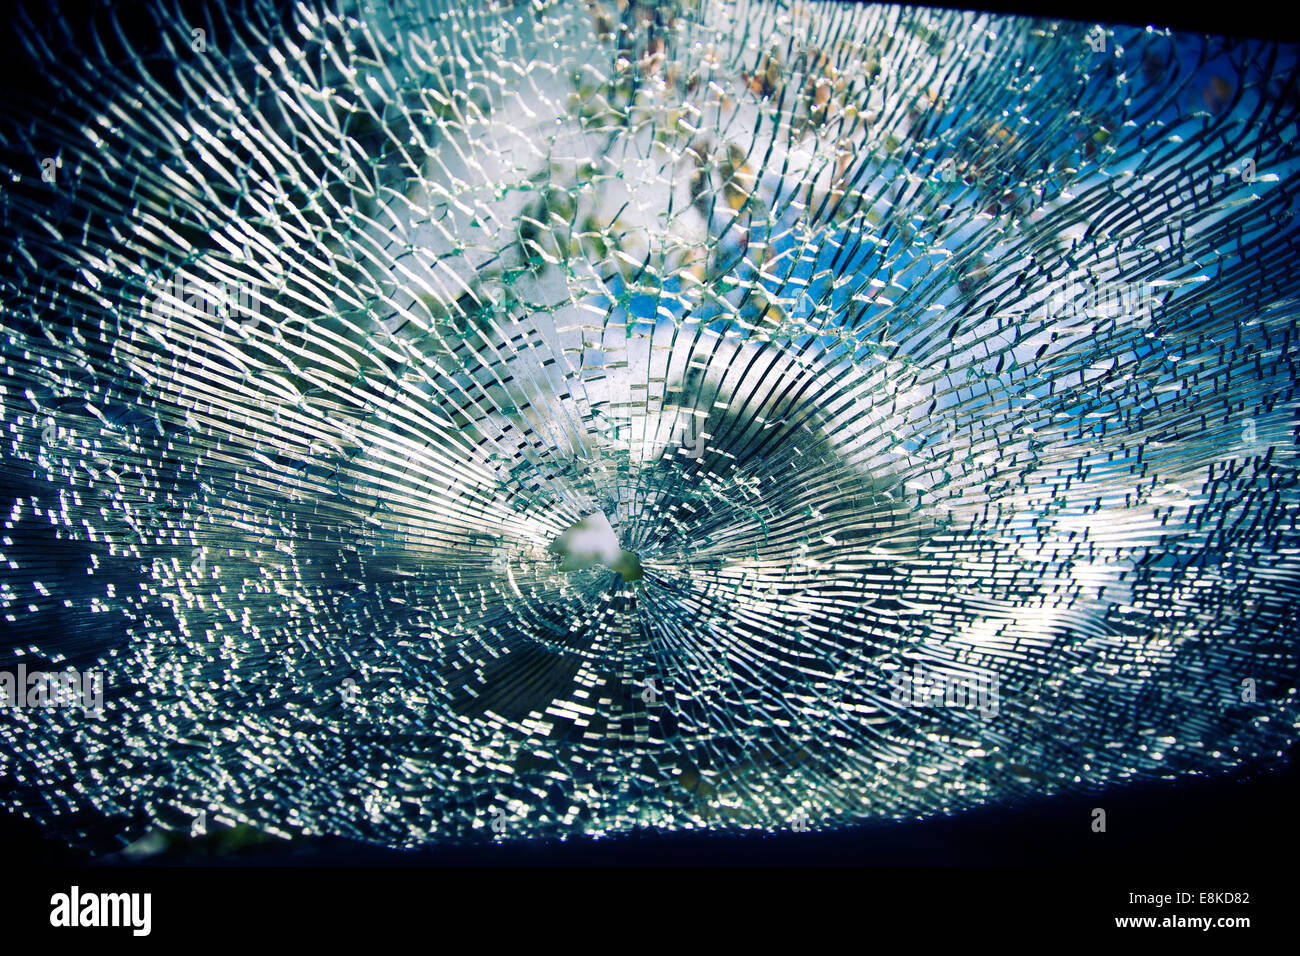 Looking out through a broken windshield during the daylight - Stock Image